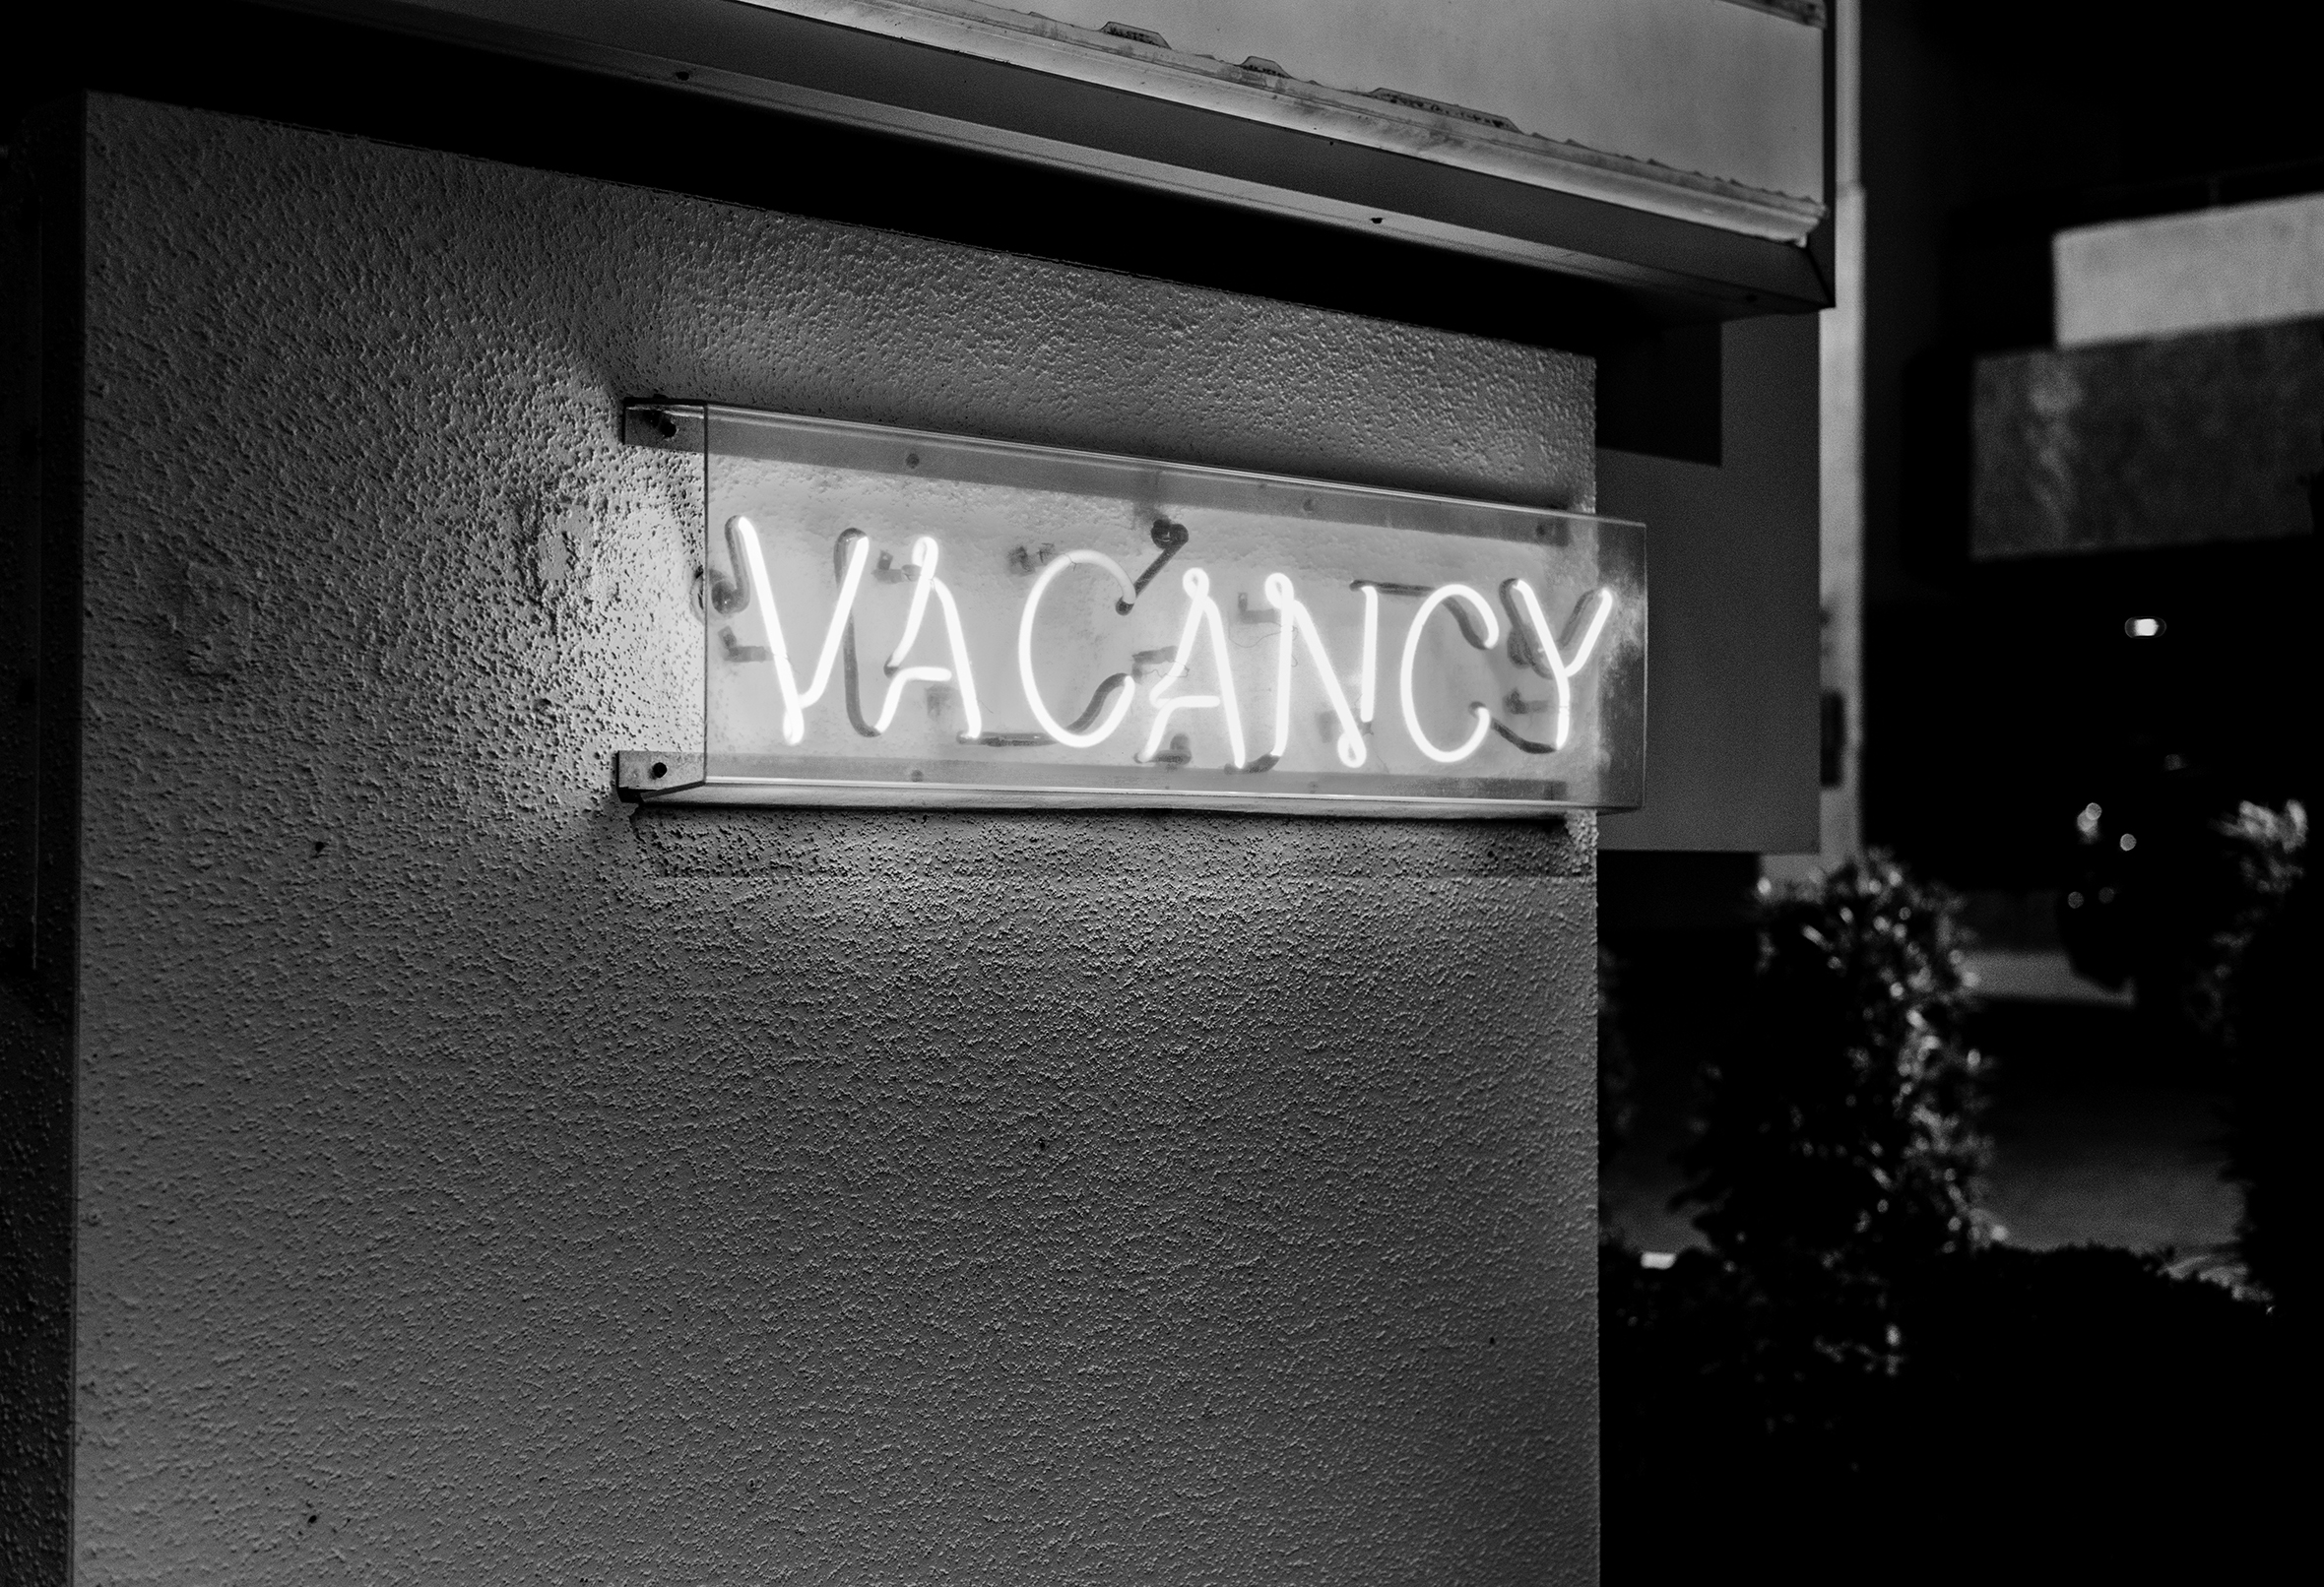 A lit-up neon Vacancy sign attached to the side of a building